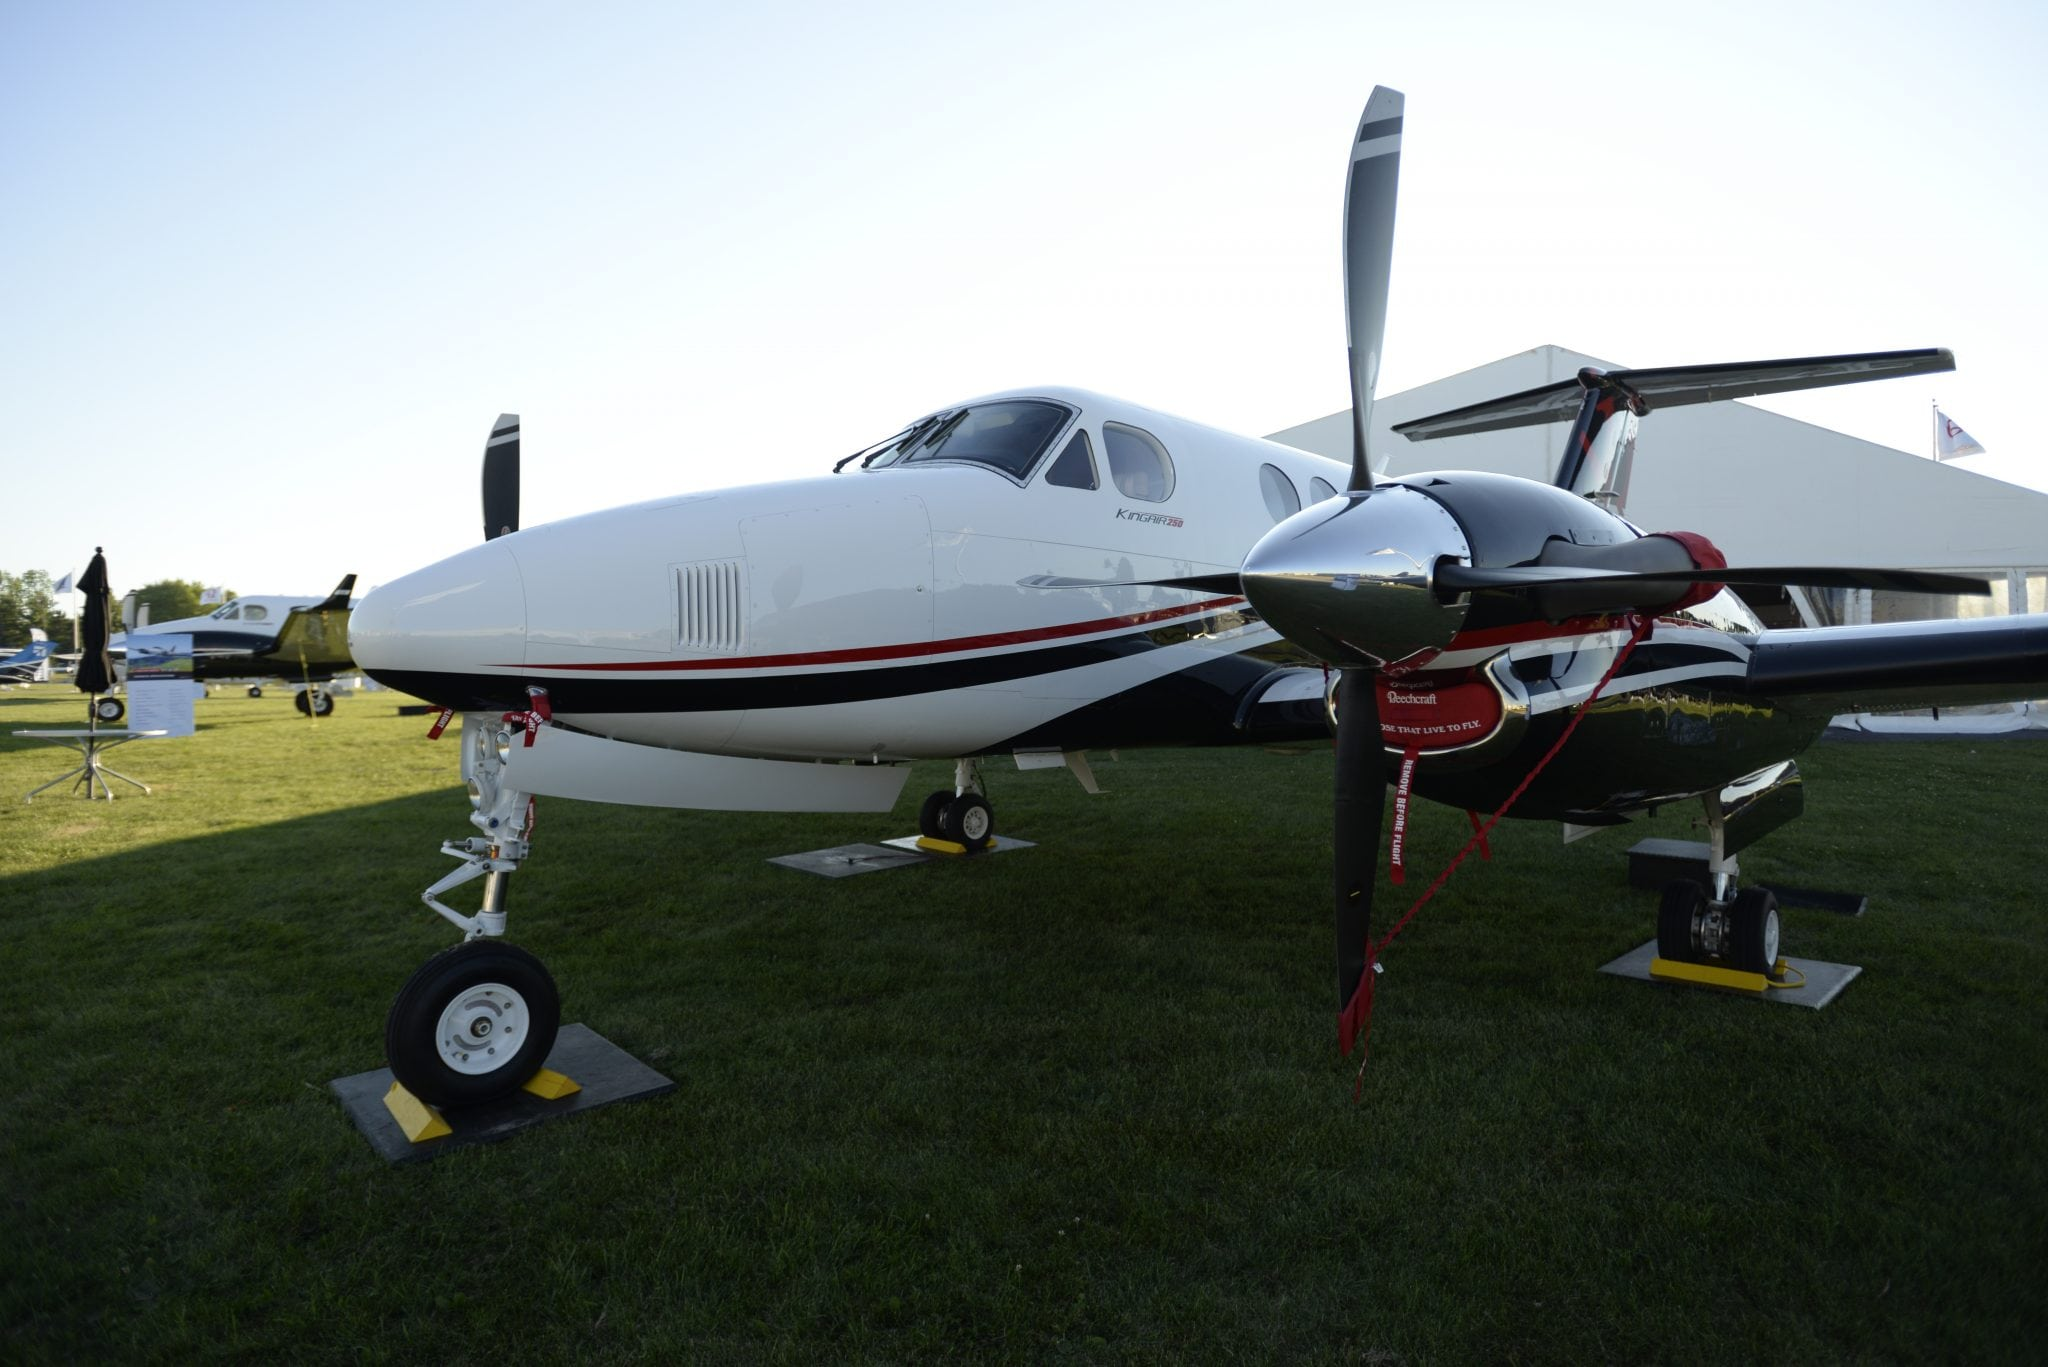 Beechcraft King Air 250 at the Experimental Aircraft Association AirVenture in Oshkosh where it is making its North American debut